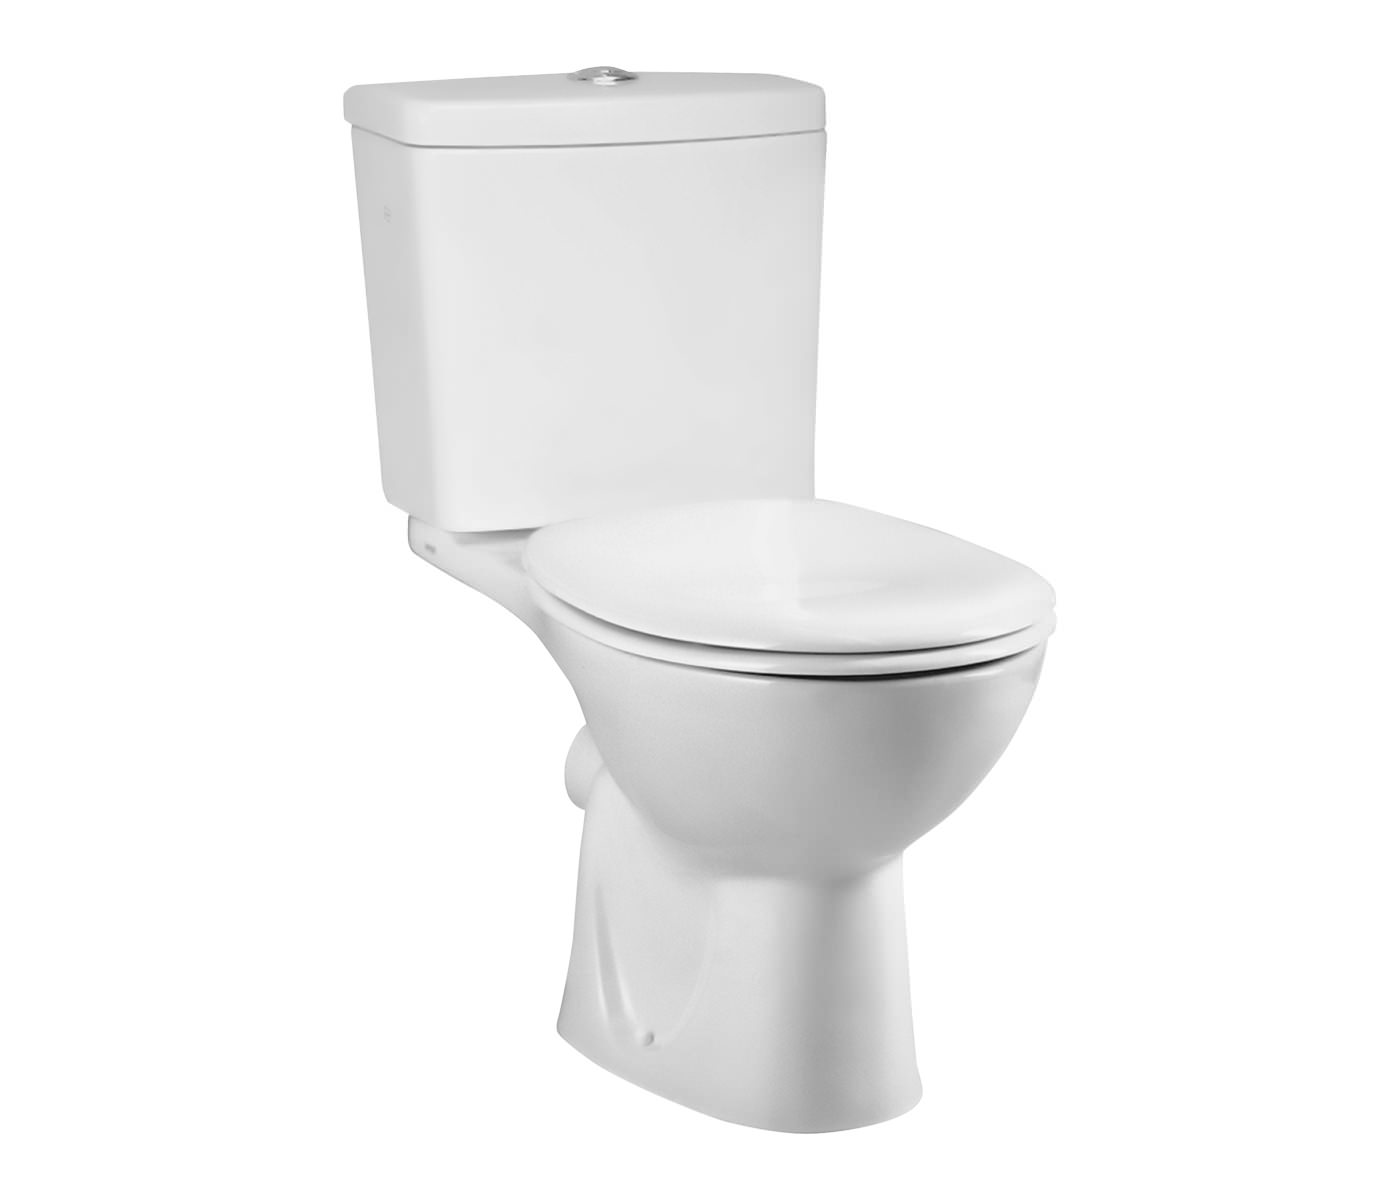 Layton Close Coupled Wc With Cistern And Seat 6623l003 0838